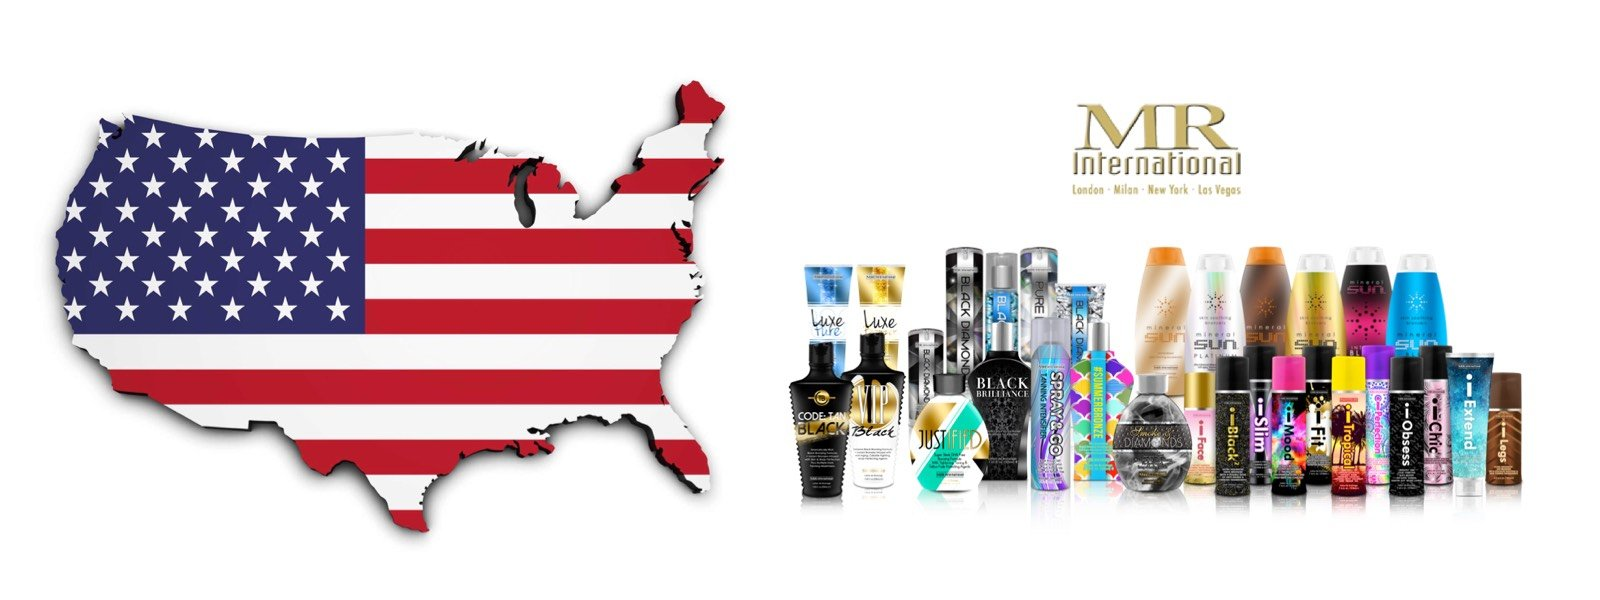 Tanning Salons by State Featuring Tanning Products by MR International